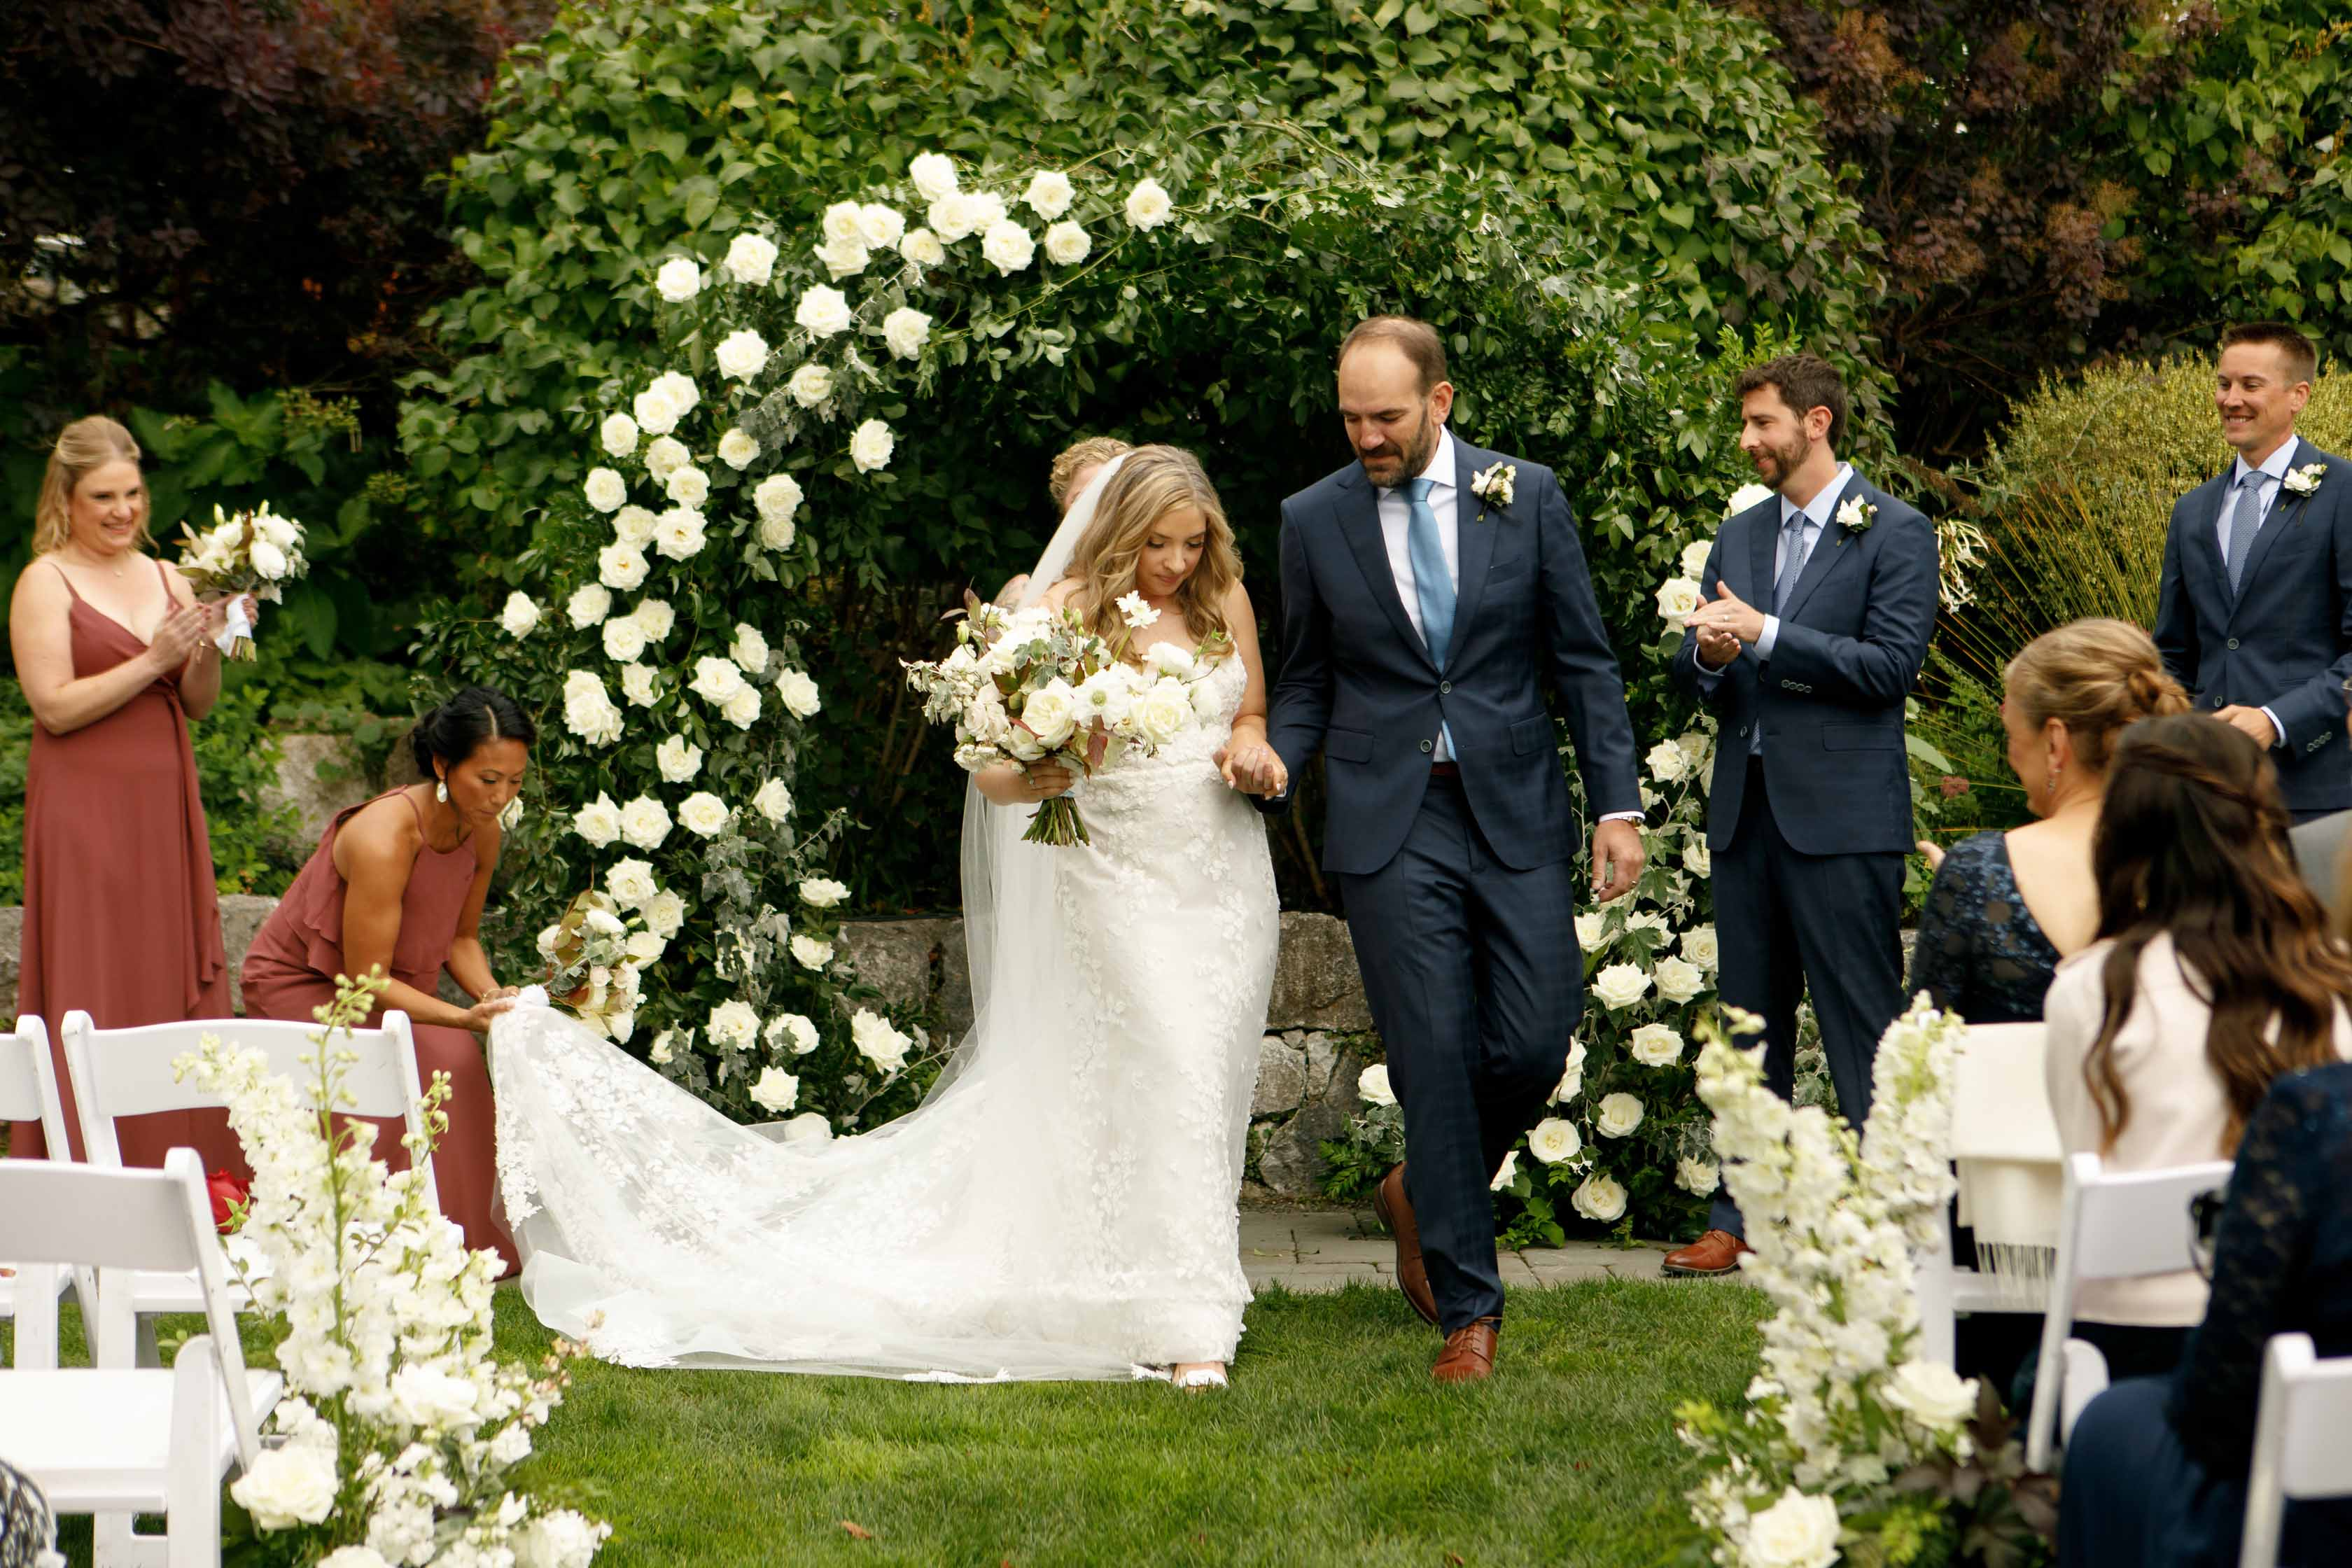 Dawn and Ben just married, wedding couple in front of circle arche with greenery and white roses - designed by  Flora Nova Design